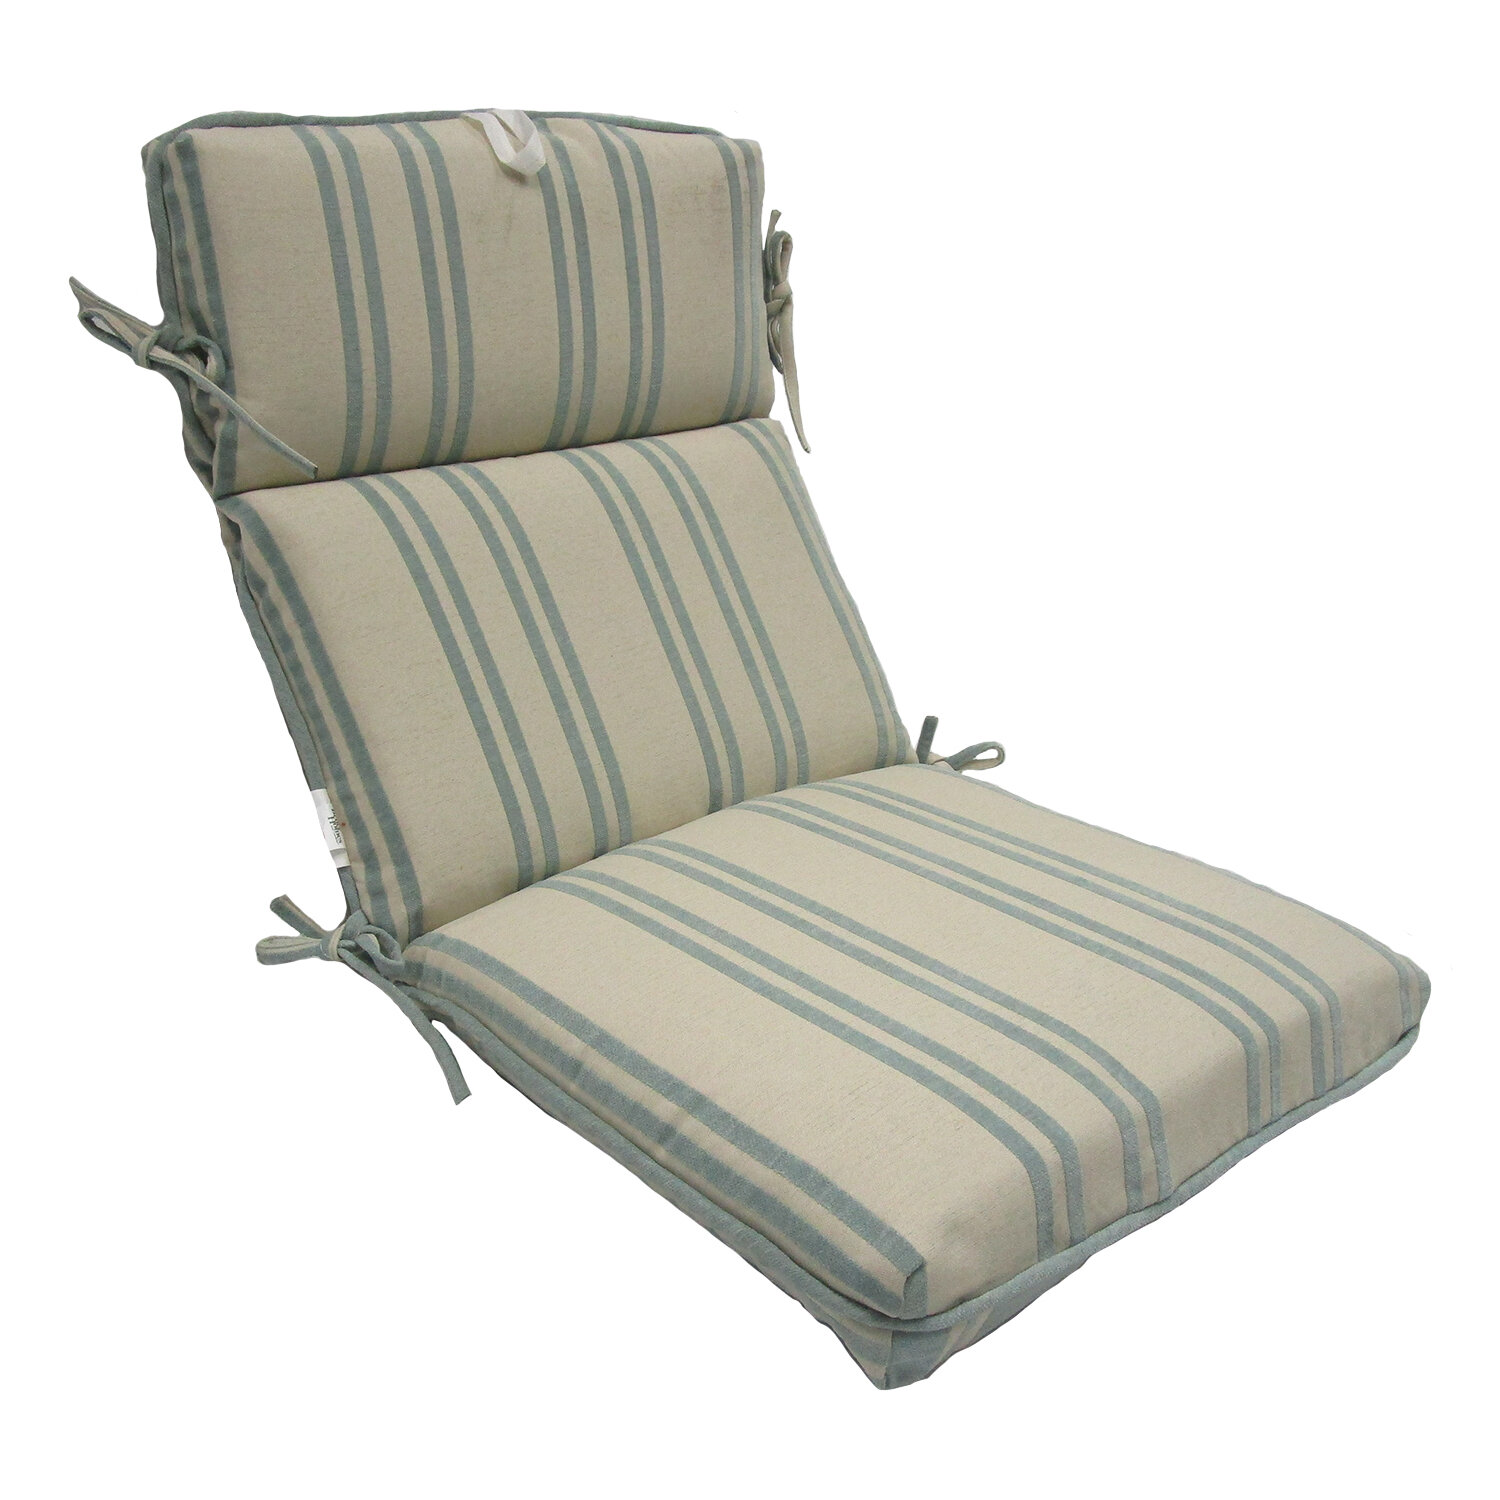 Highland Dunes Stripe High Back Outdoor Lounge Chair Cushion Ebay